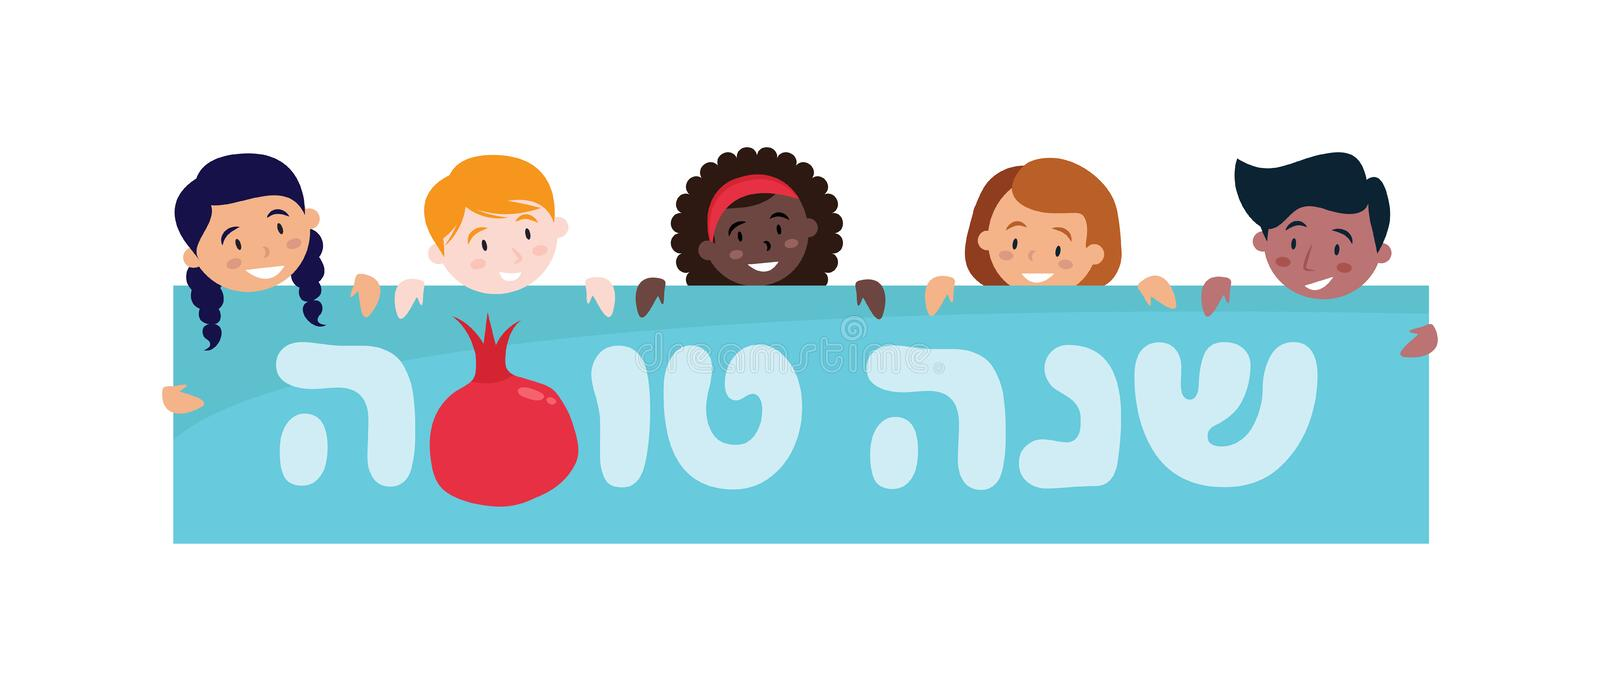 Shana tova greeting card with happy new year in hebrew. Vector stock illustration